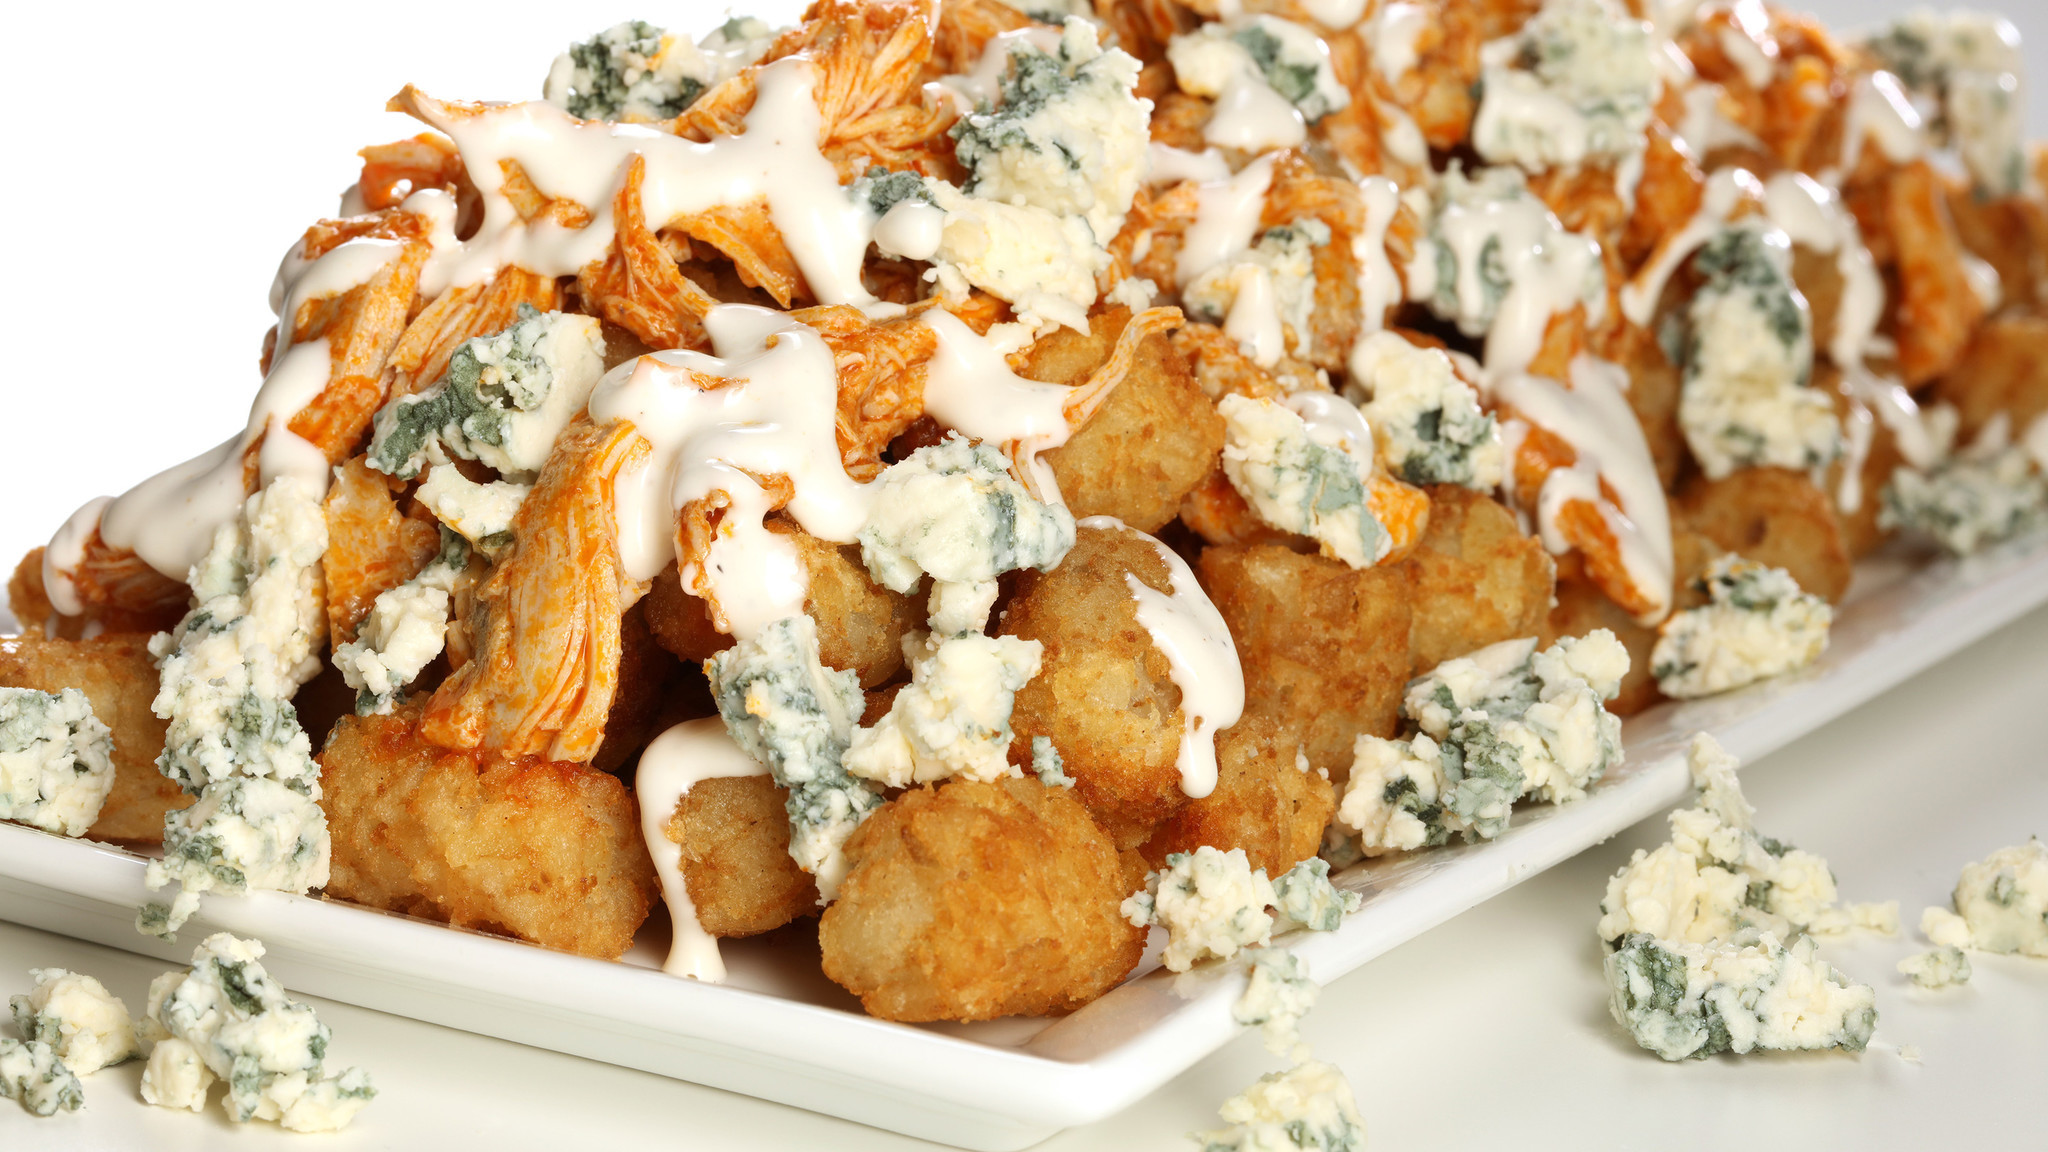 Super Bowl snack idea: Use Tater Tots to make waffles, nachos and poutine